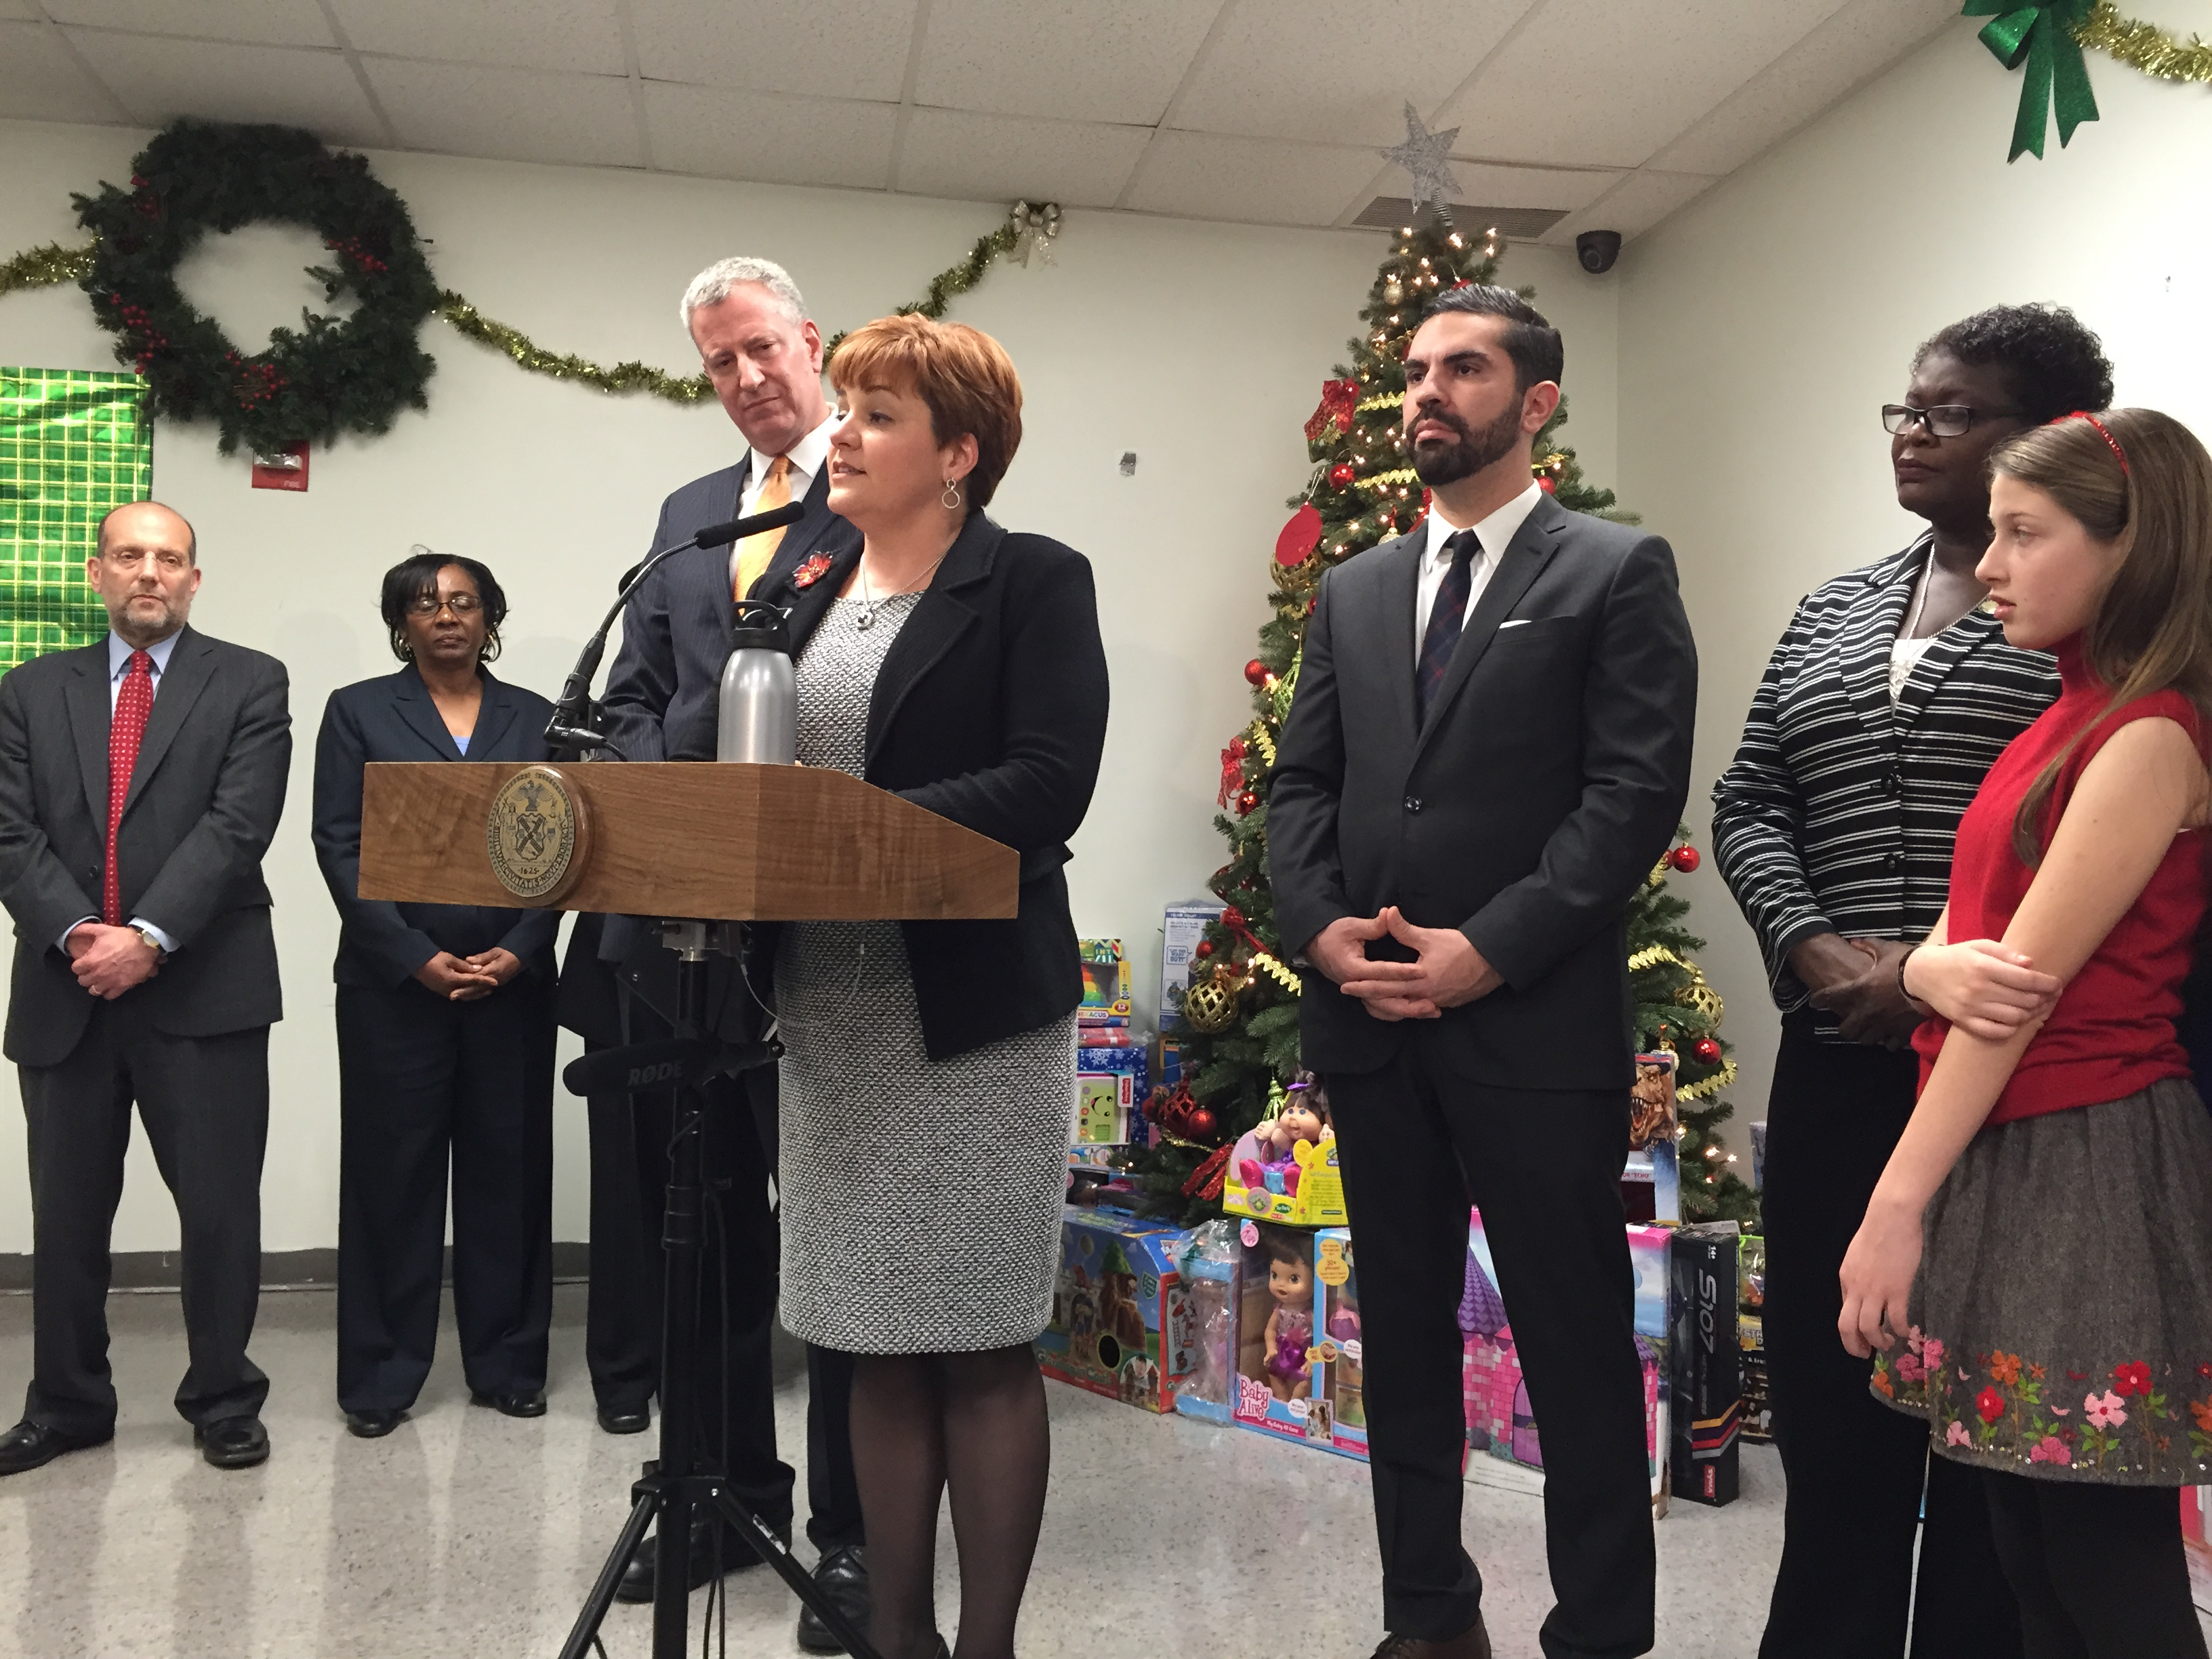 Former Council Speaker Christine Quinn joined Mayor Bill de Blasio for a press conference at a homeless shelter today. (Photo: Jillian Jorgensen for Observer)